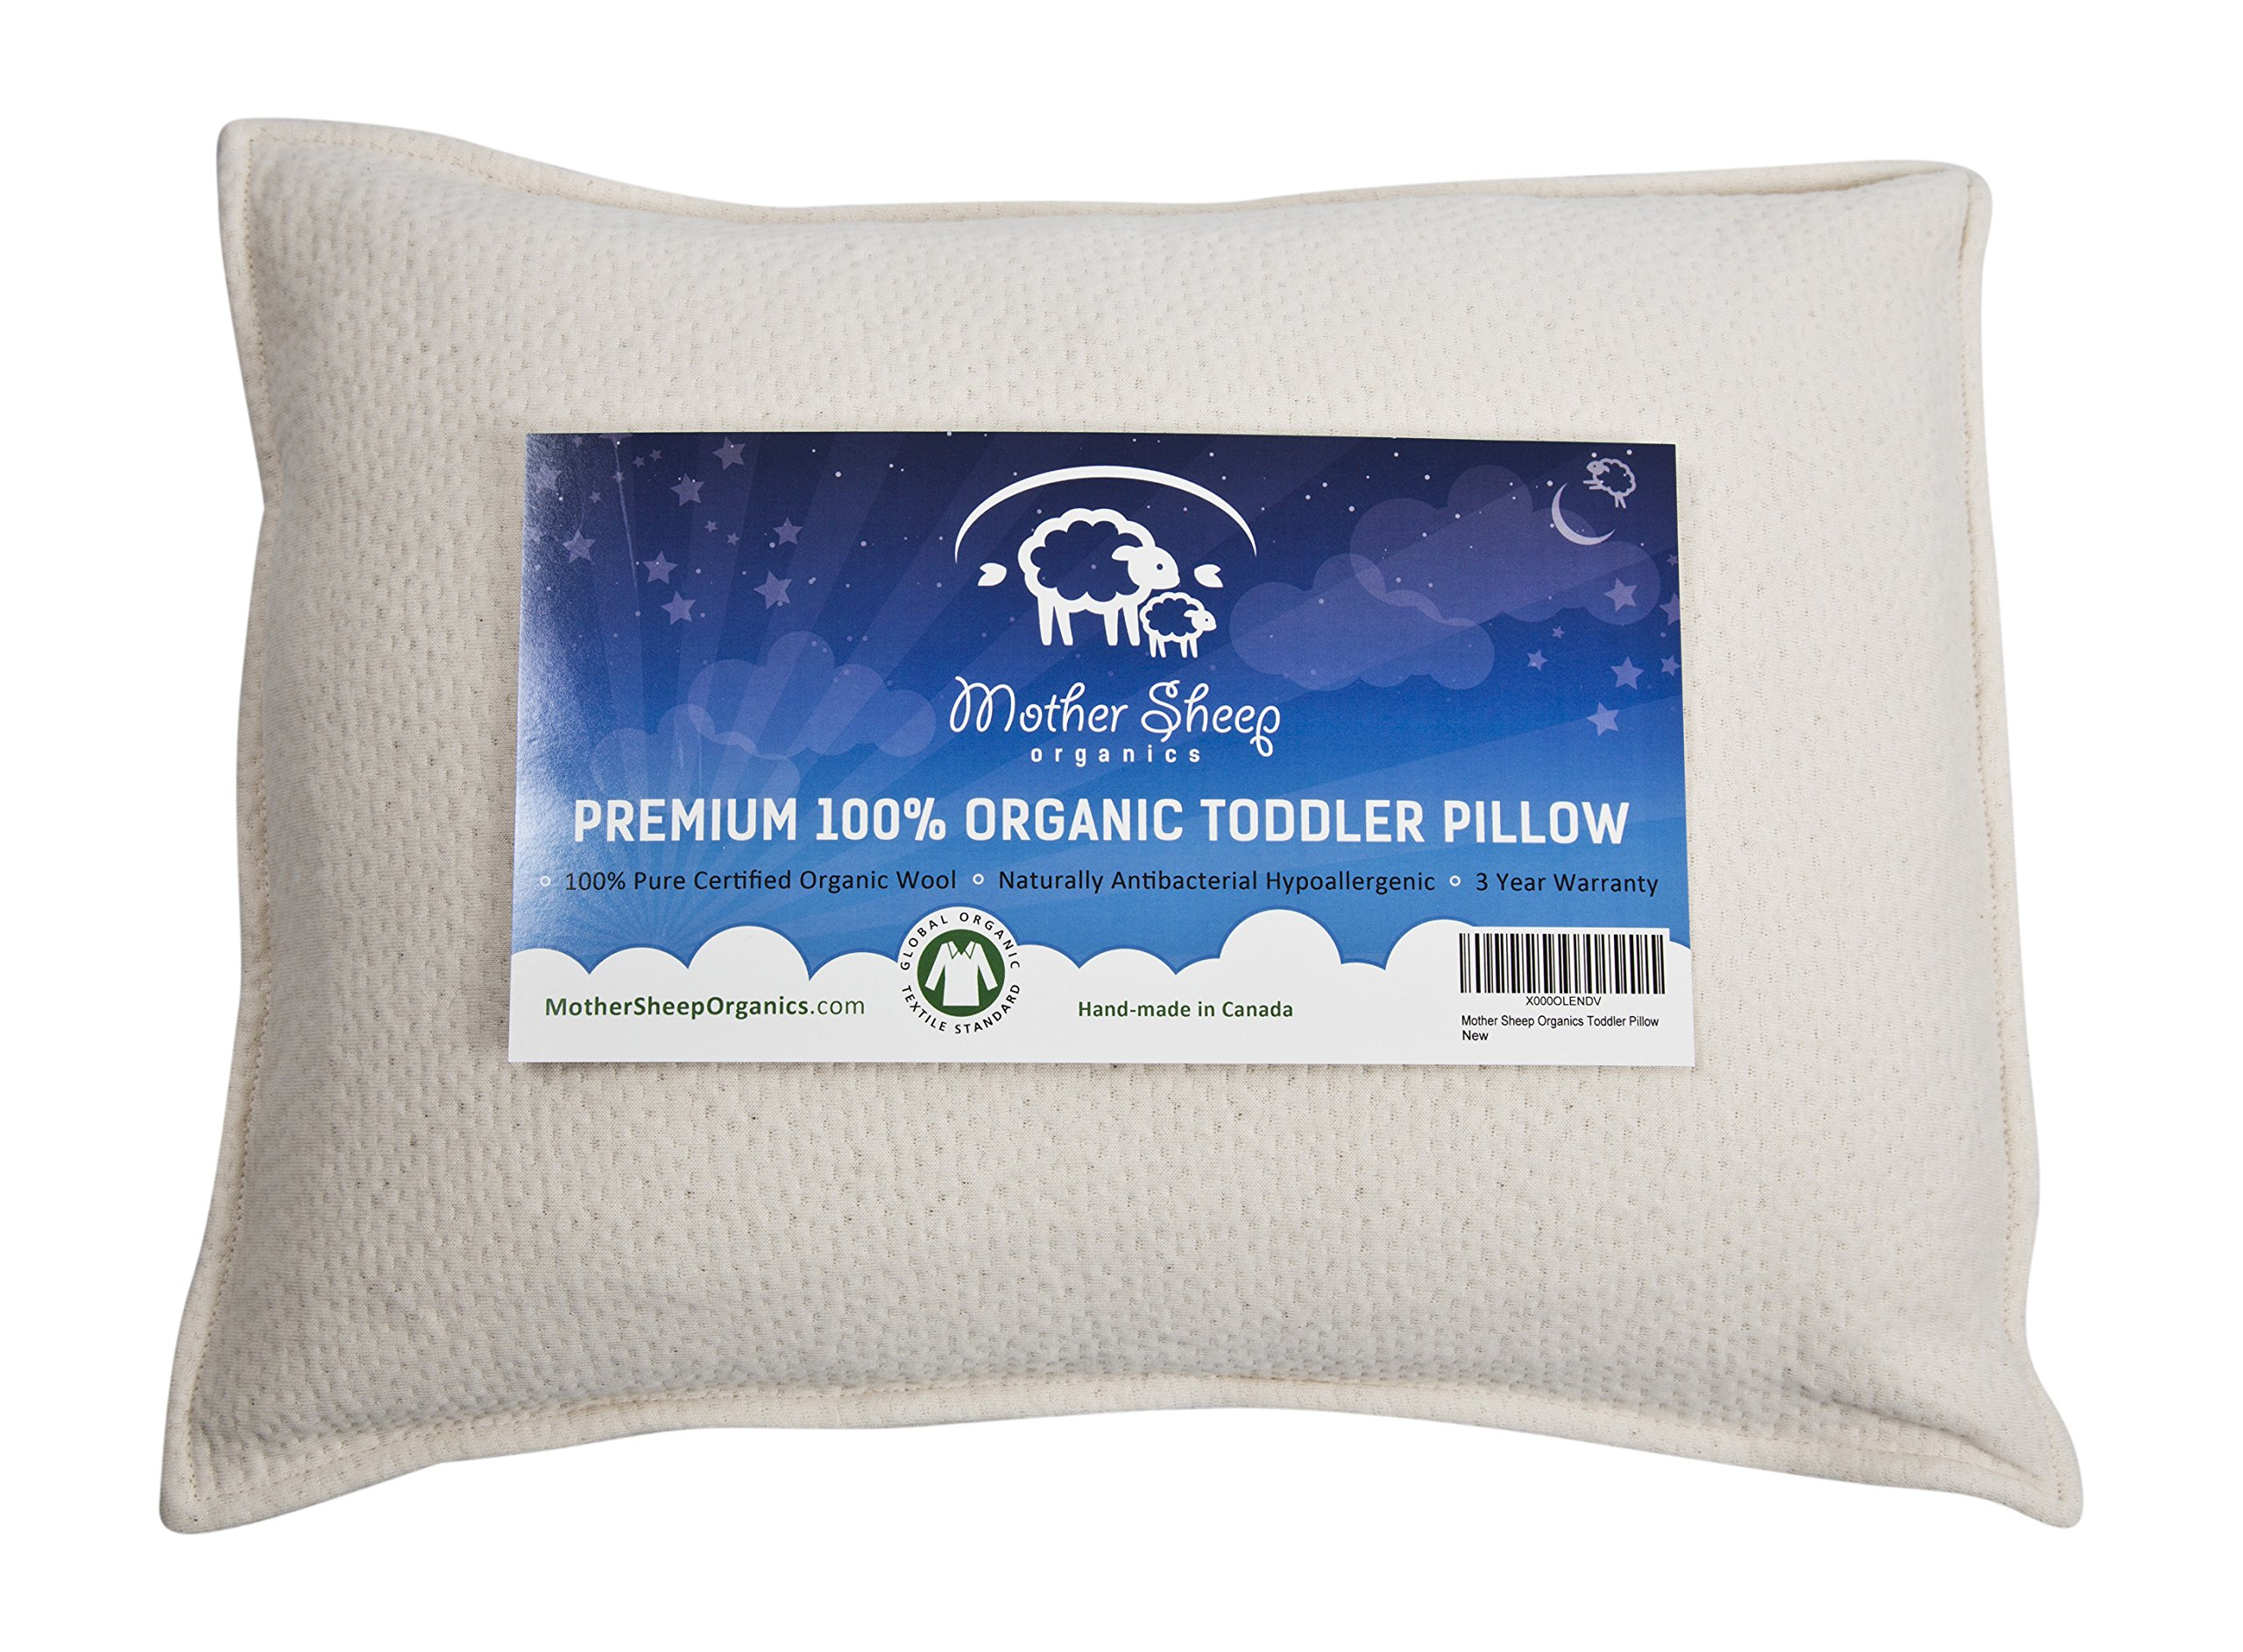 Organic Wool Toddler and Kids Pillow, Antibacterial & Hypoallergenic, 14x19 by Mother Sheep Organics